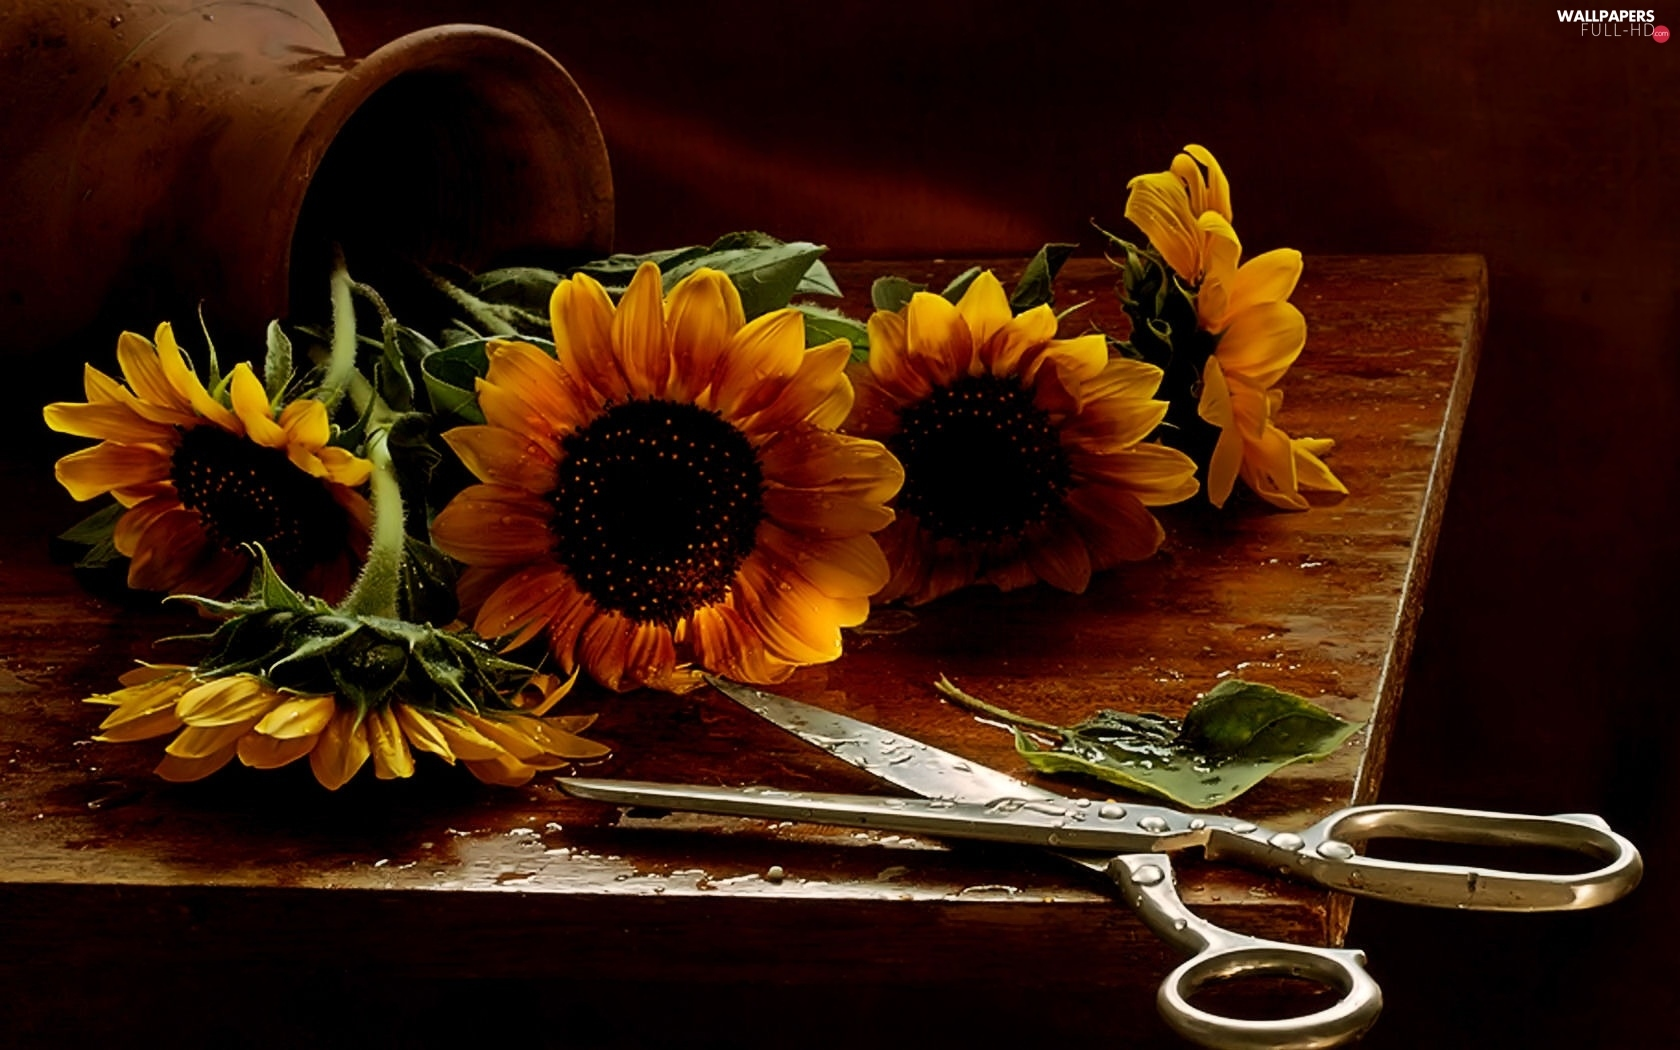 sunflowers, scissors, bouquet